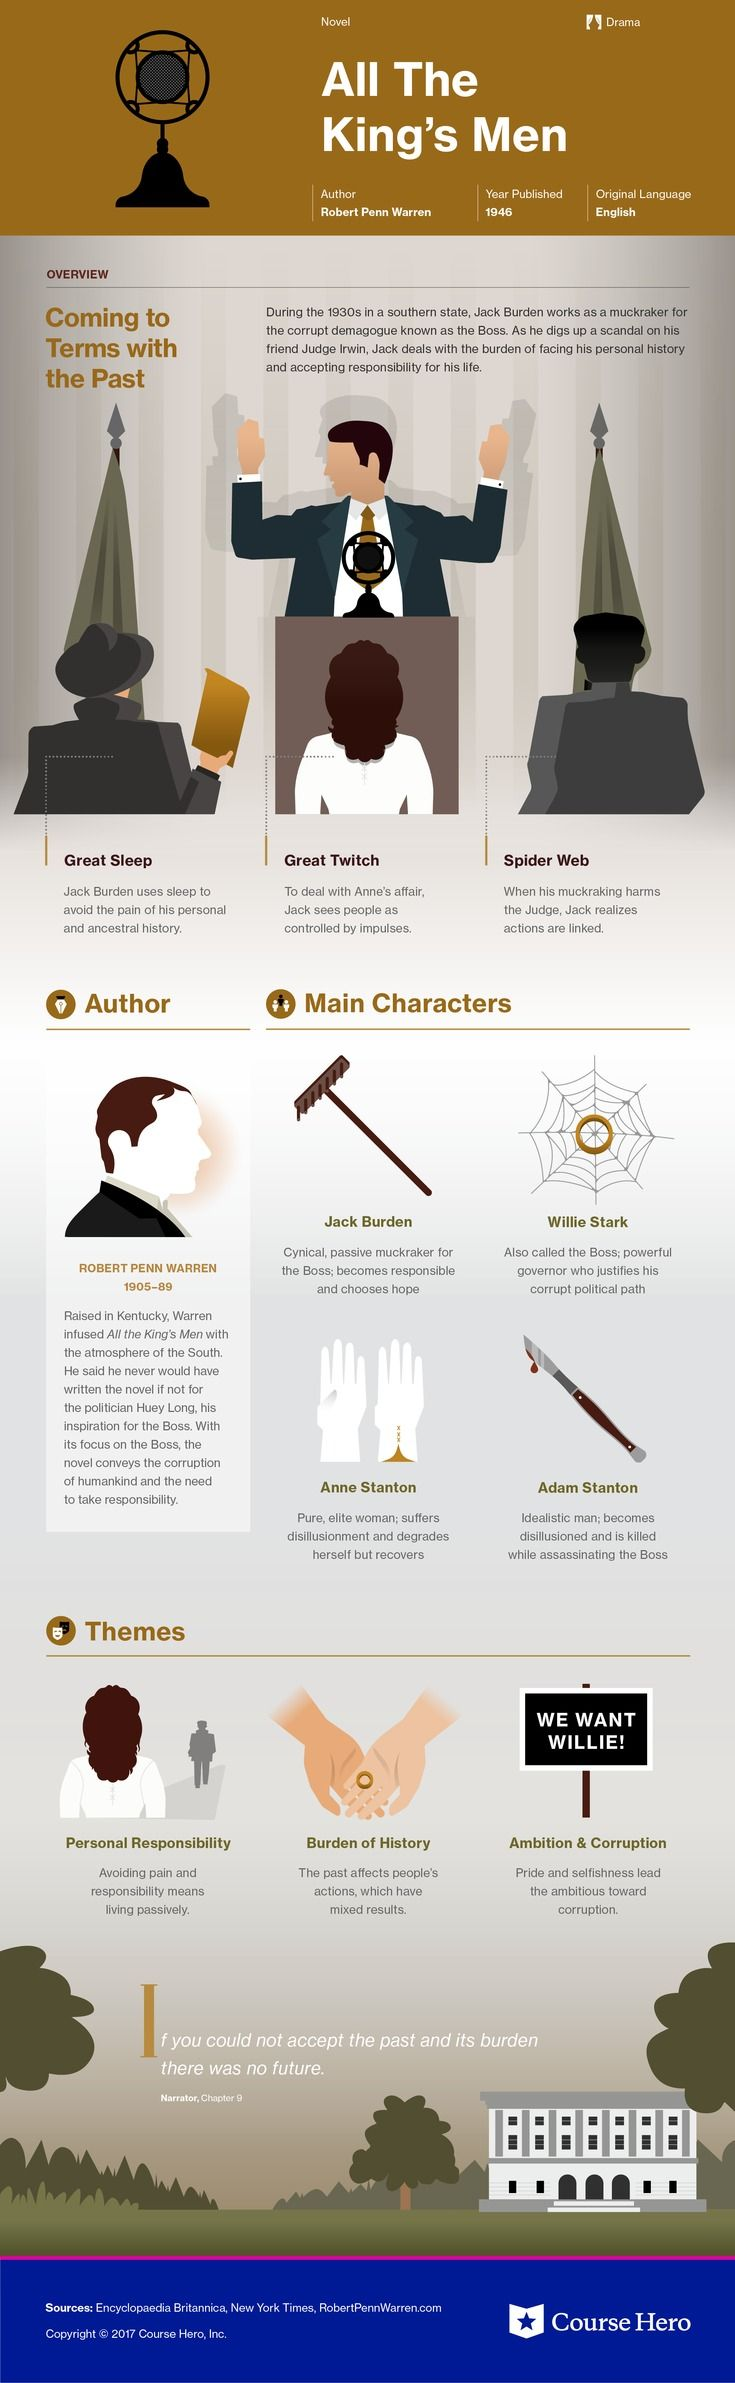 This @CourseHero infographic on All the King's Men is both visually stunning and informative!